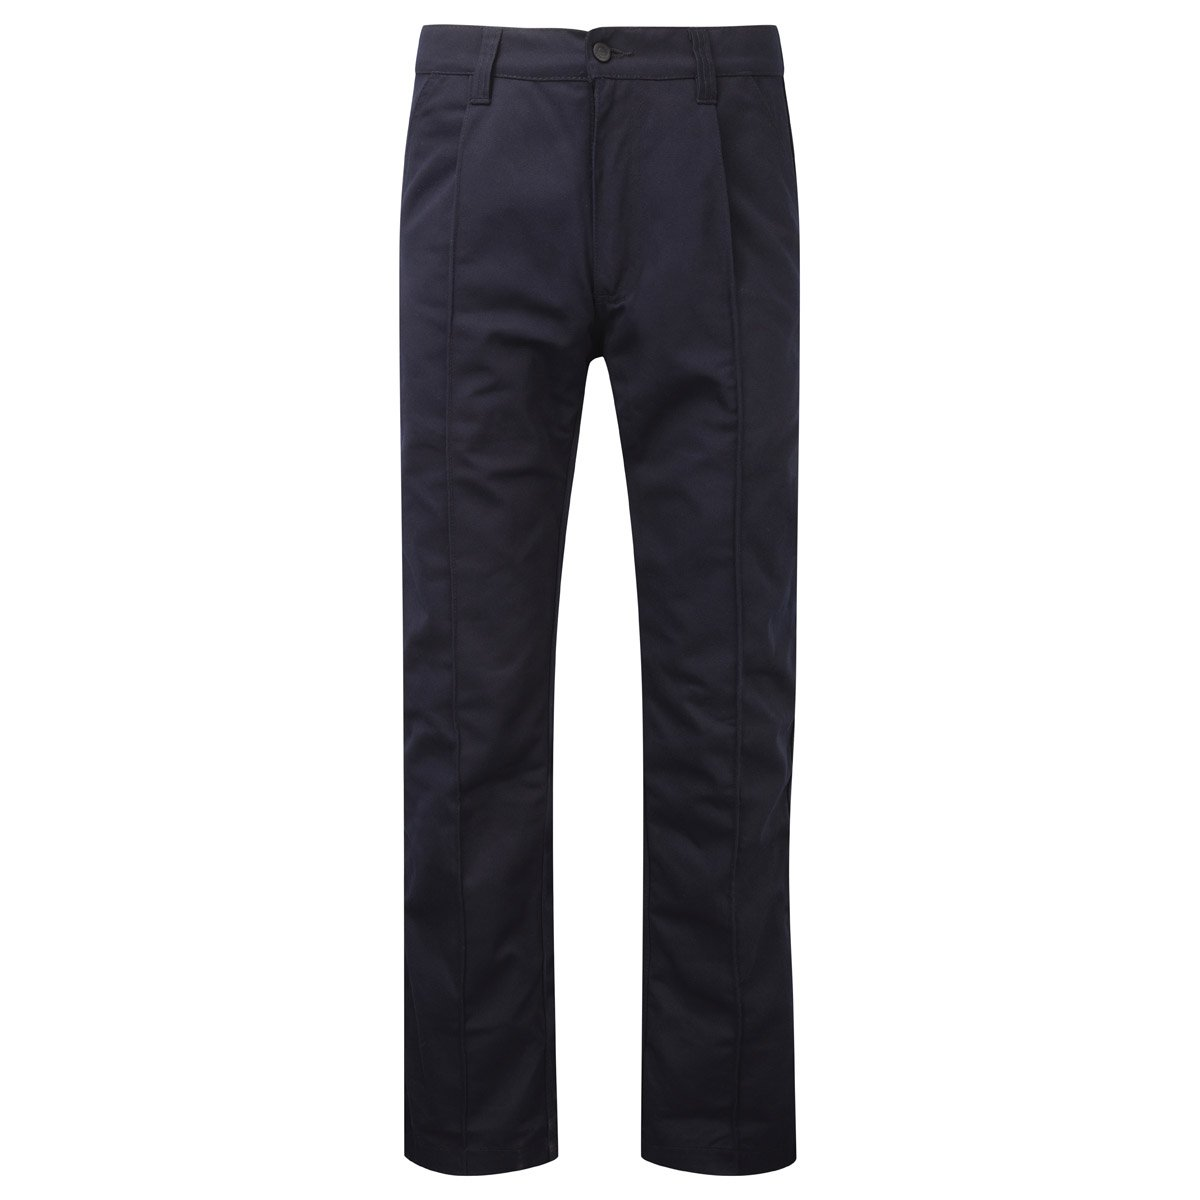 OR Harrier Traditional Sewn in Seam Crease Work Wear Trousers Pants